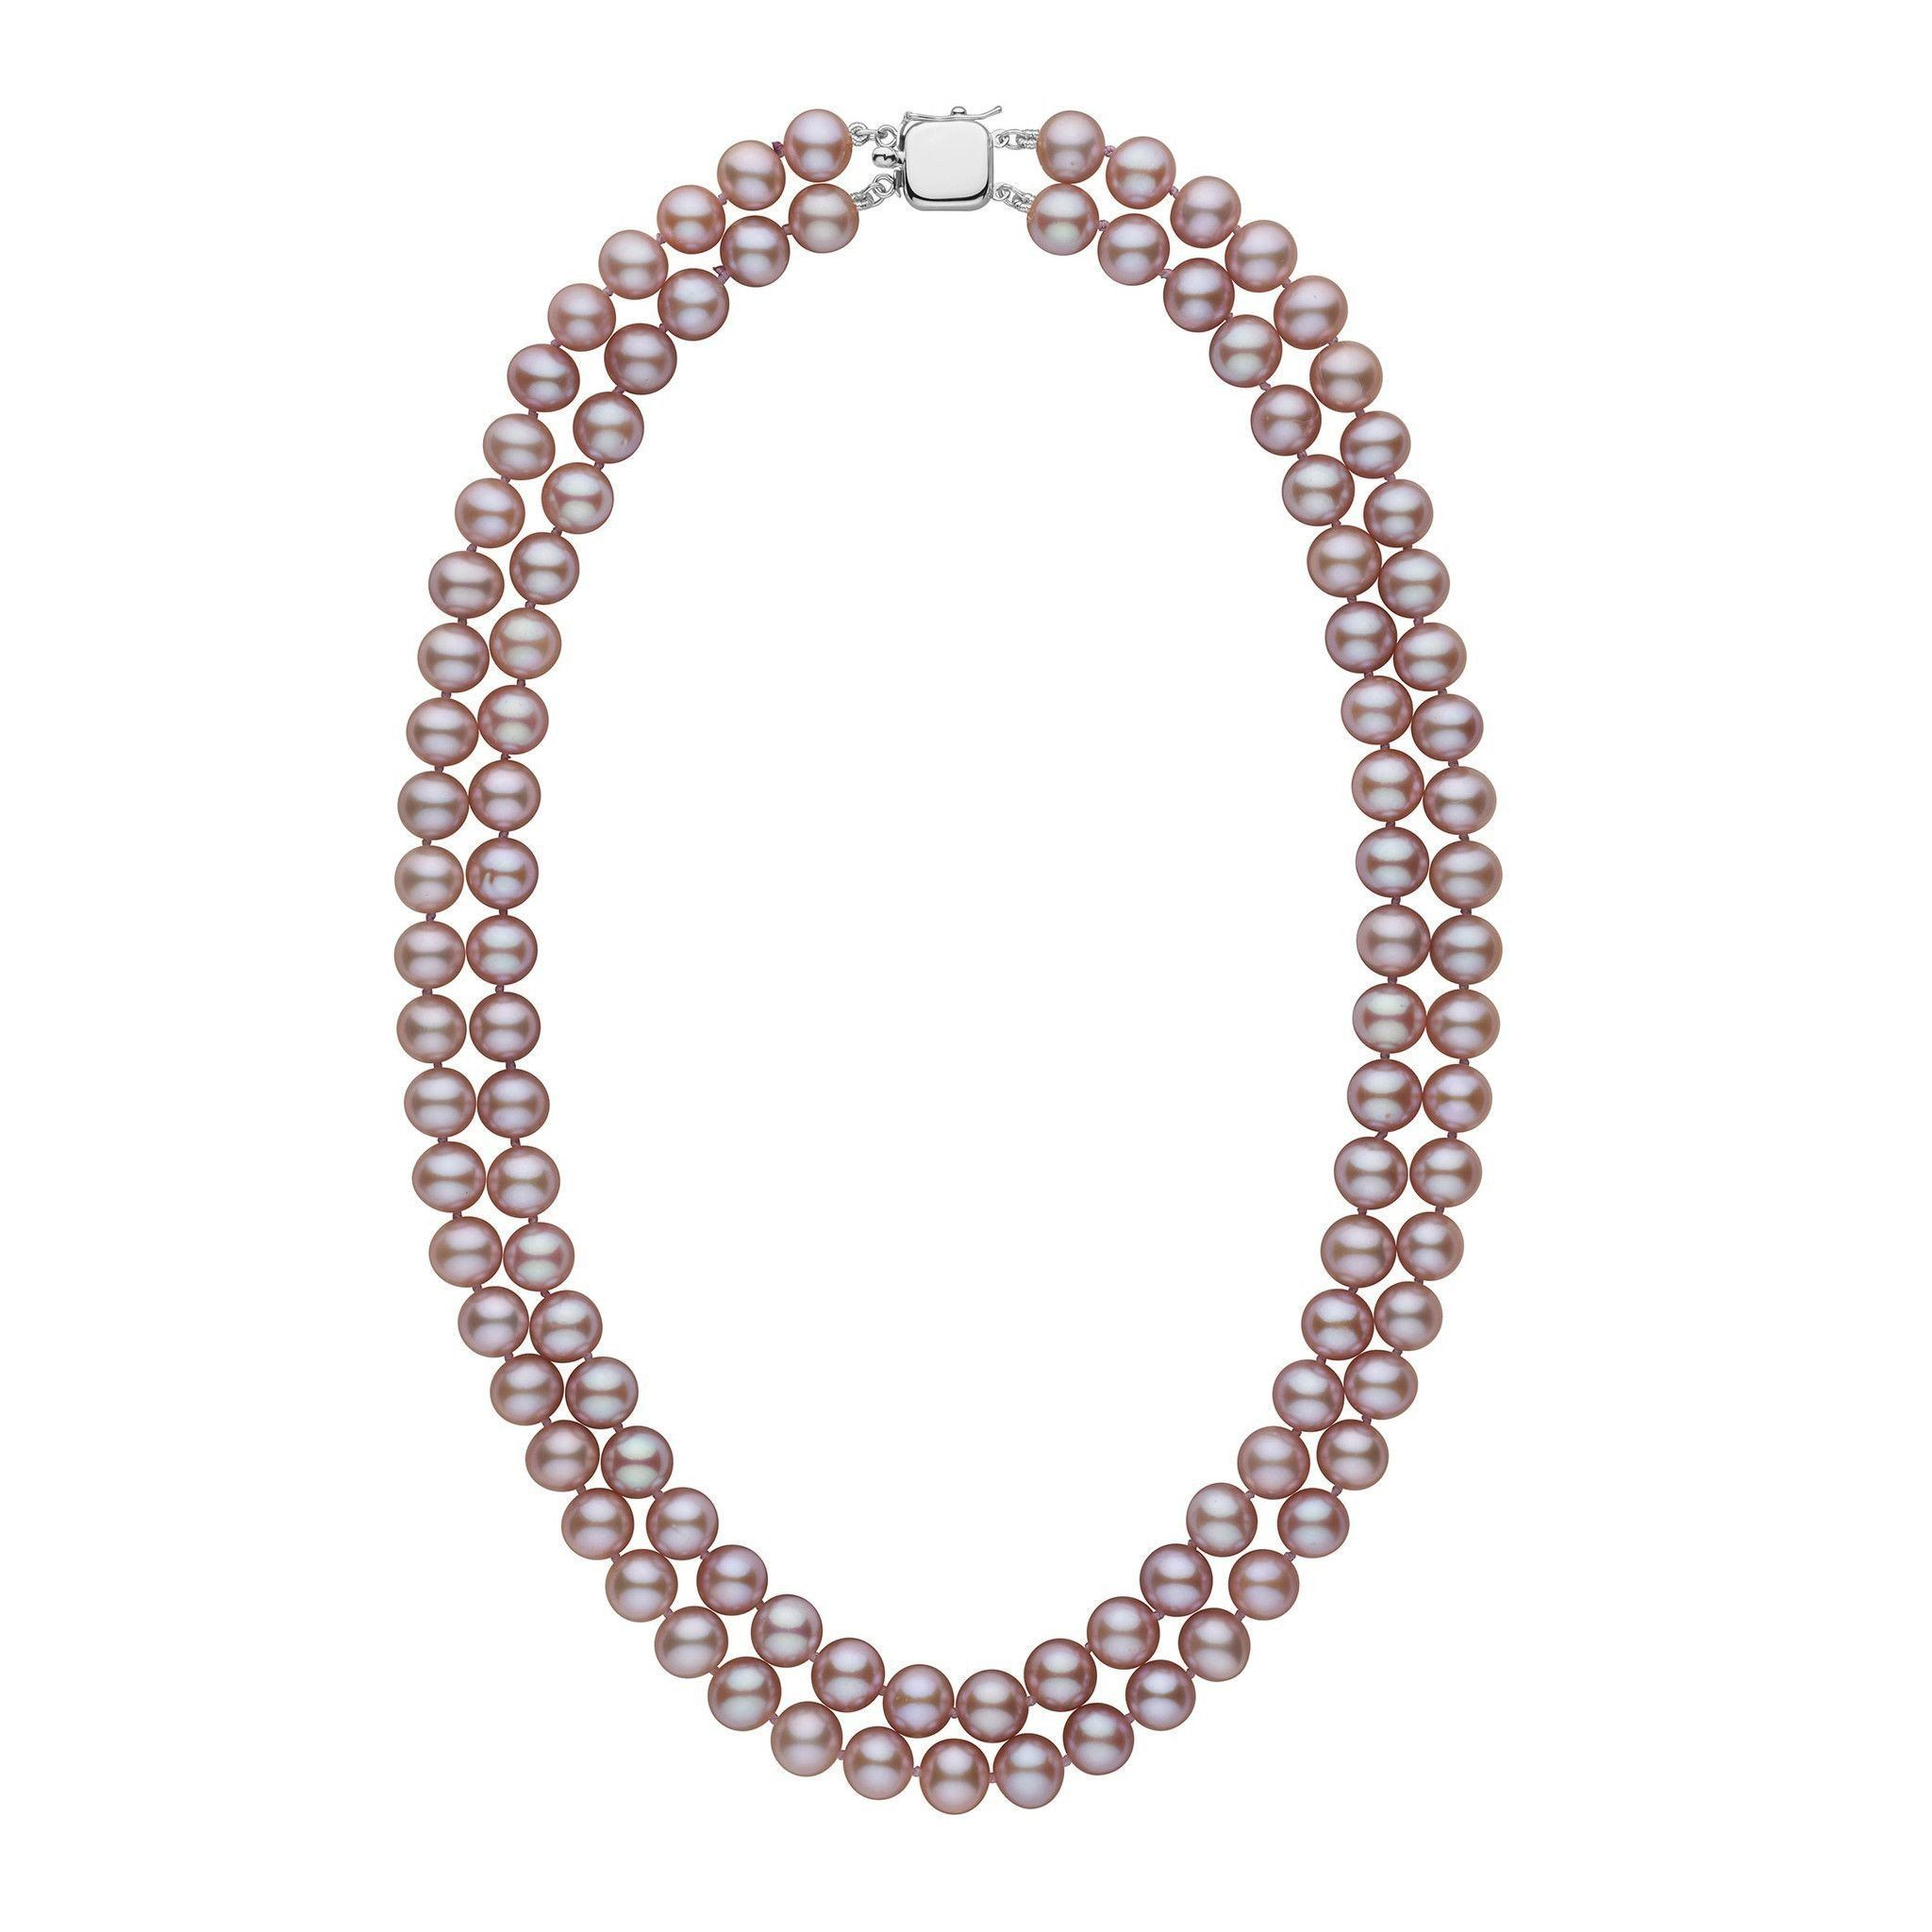 7.5-8.0 mm Double Strand AAA Lavender Freshwater Pearl Necklace